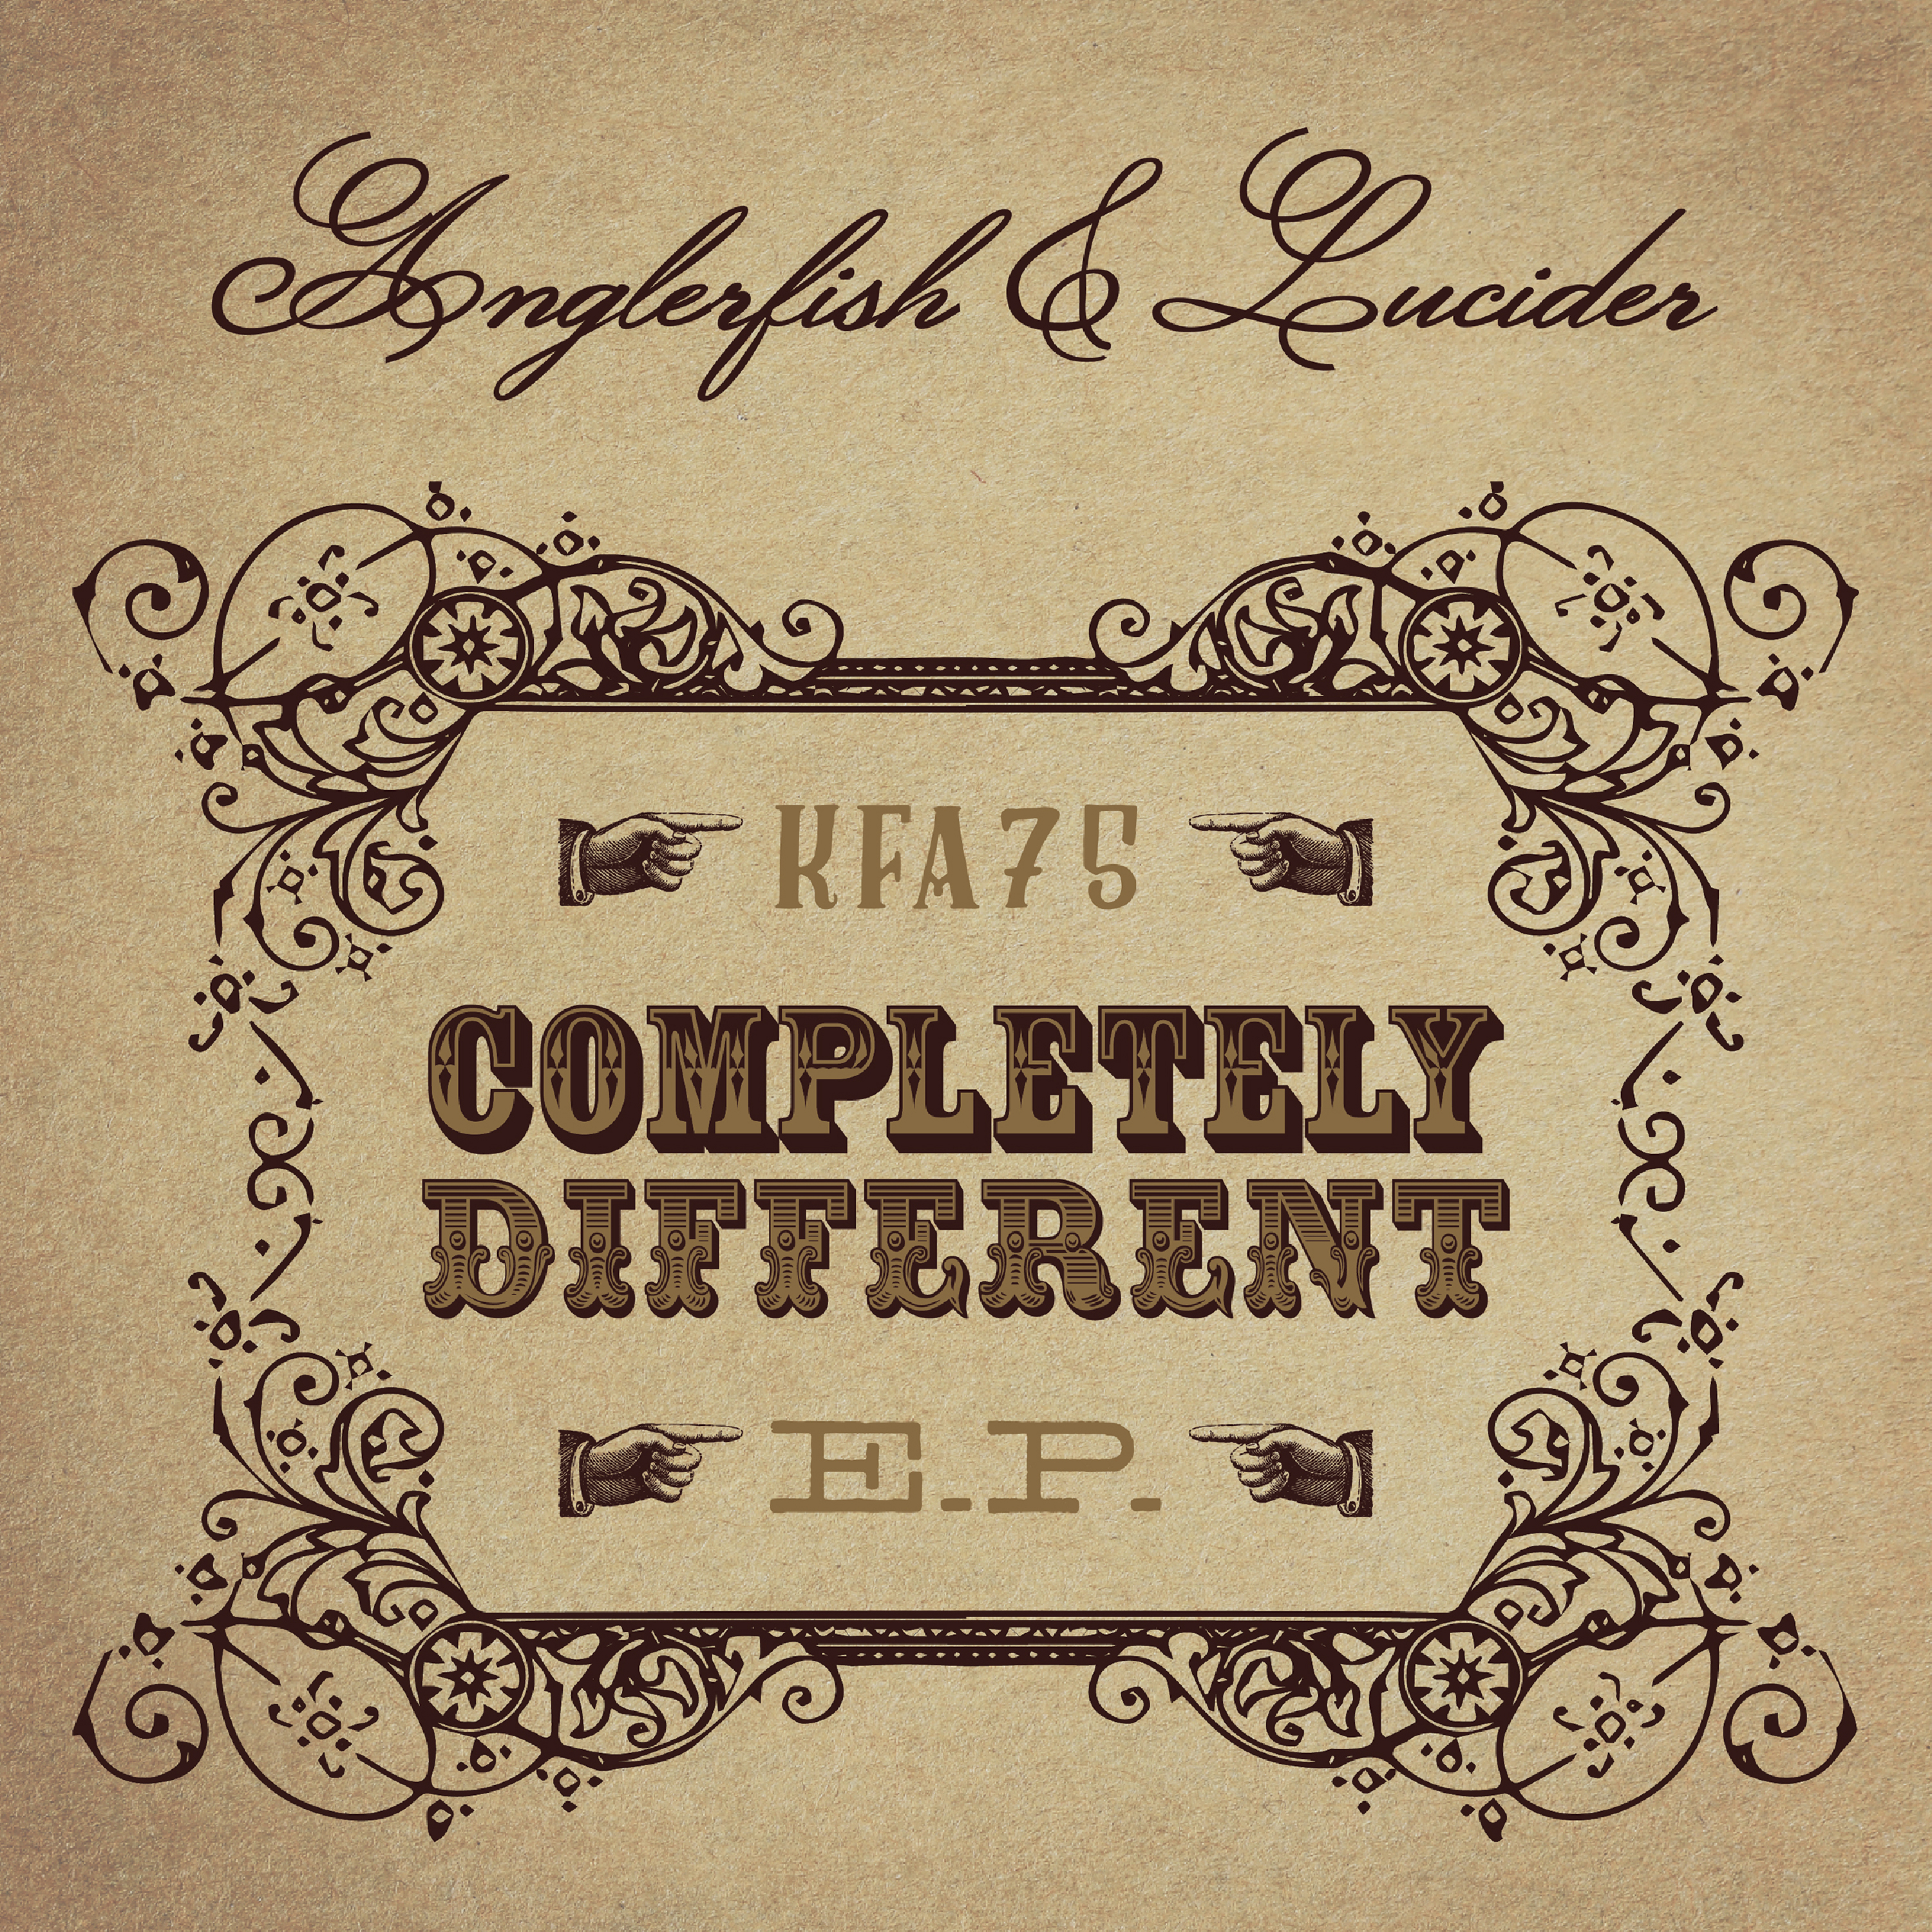 [KFA075] Anglerfish & Lucider - Completely Different EP (Digital Only)